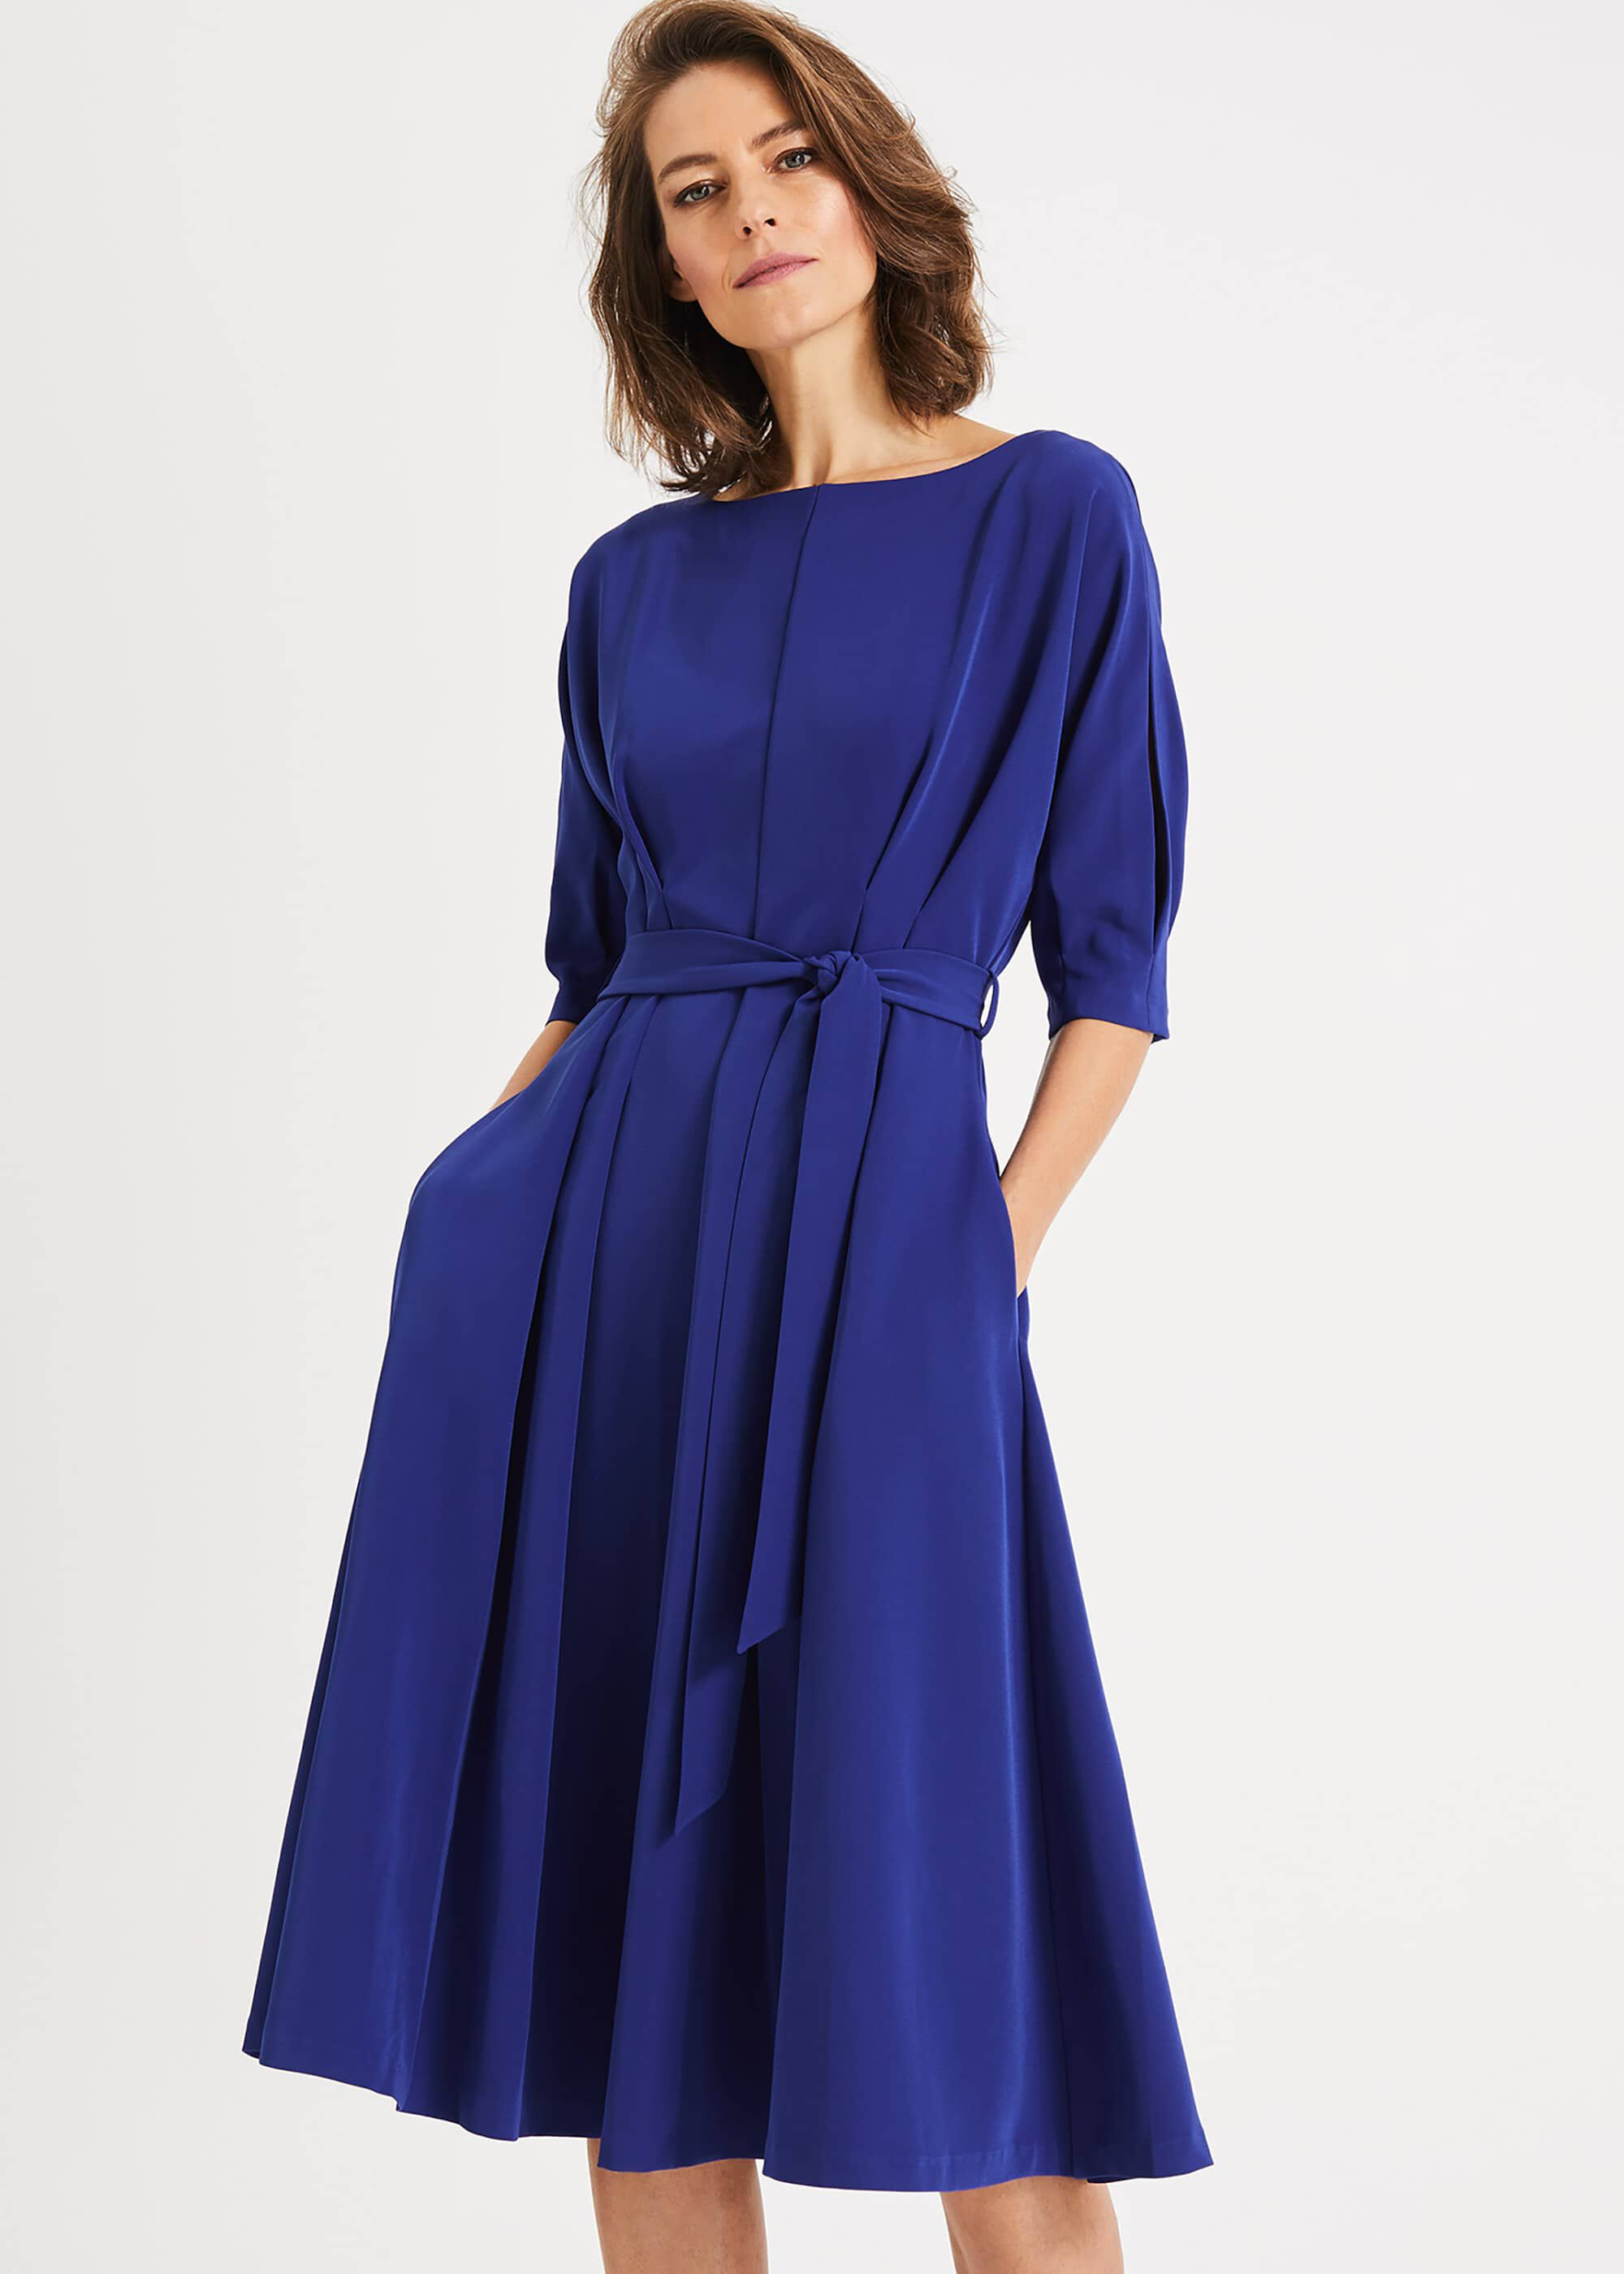 Phase Eight Cleo Tie Waist Dress, Blue, Fit & Flare, Occasion Dress